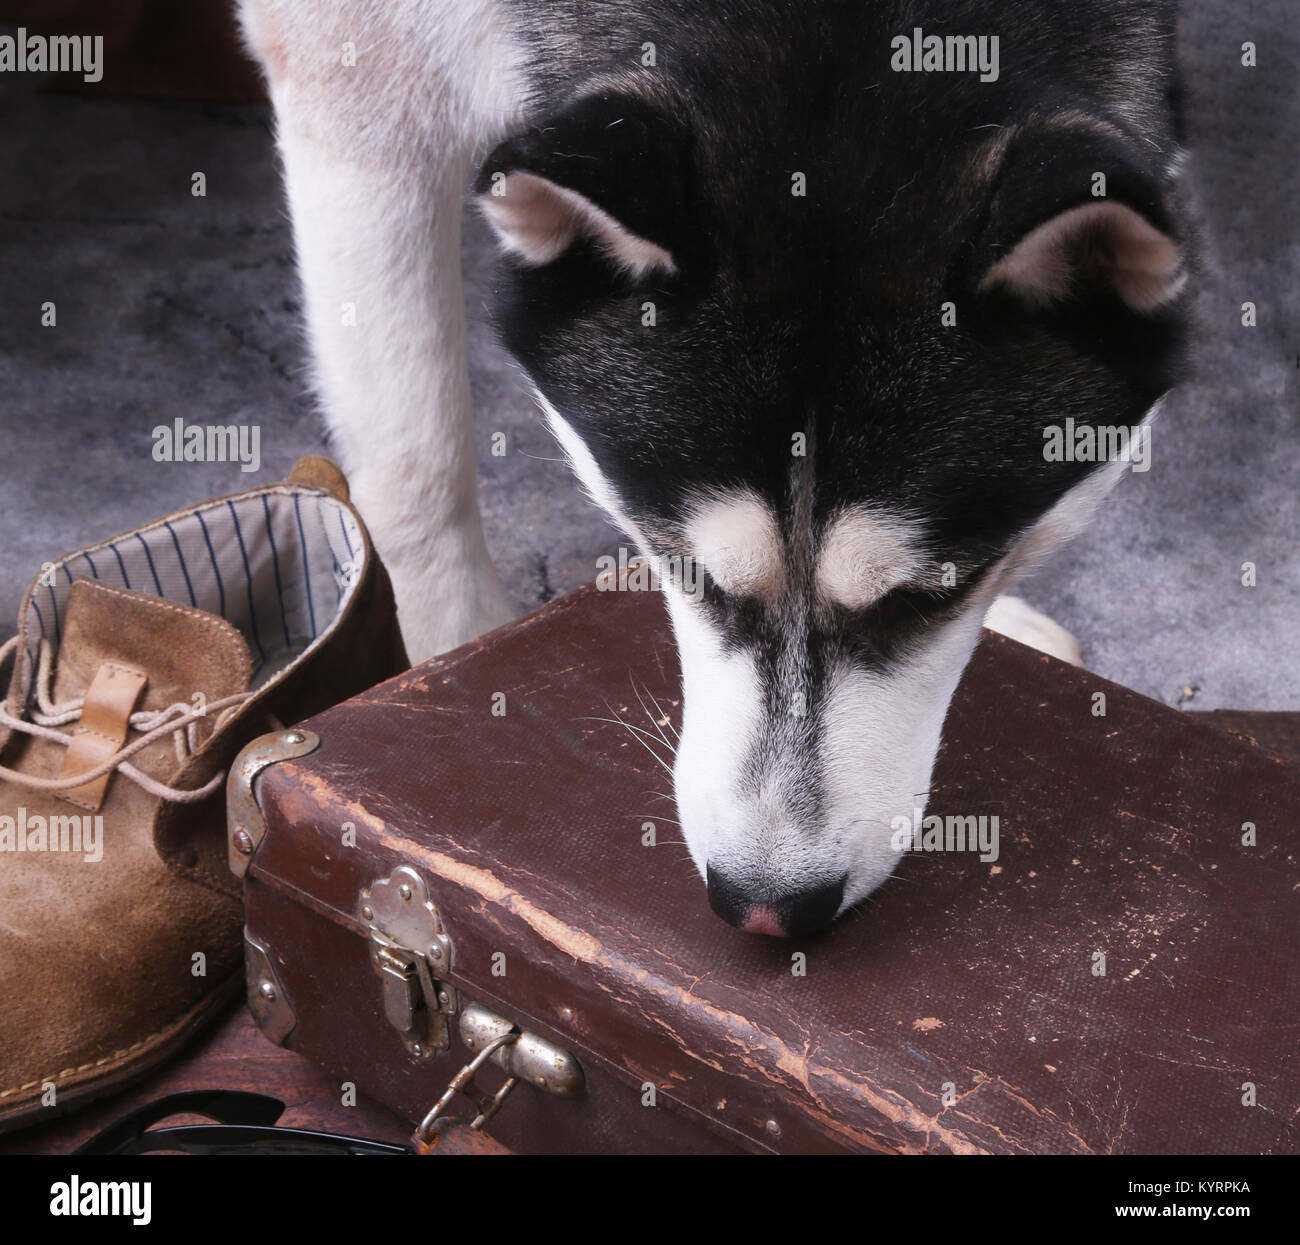 Dog sniffs out drugs or bomb in a luggage. - Stock Image